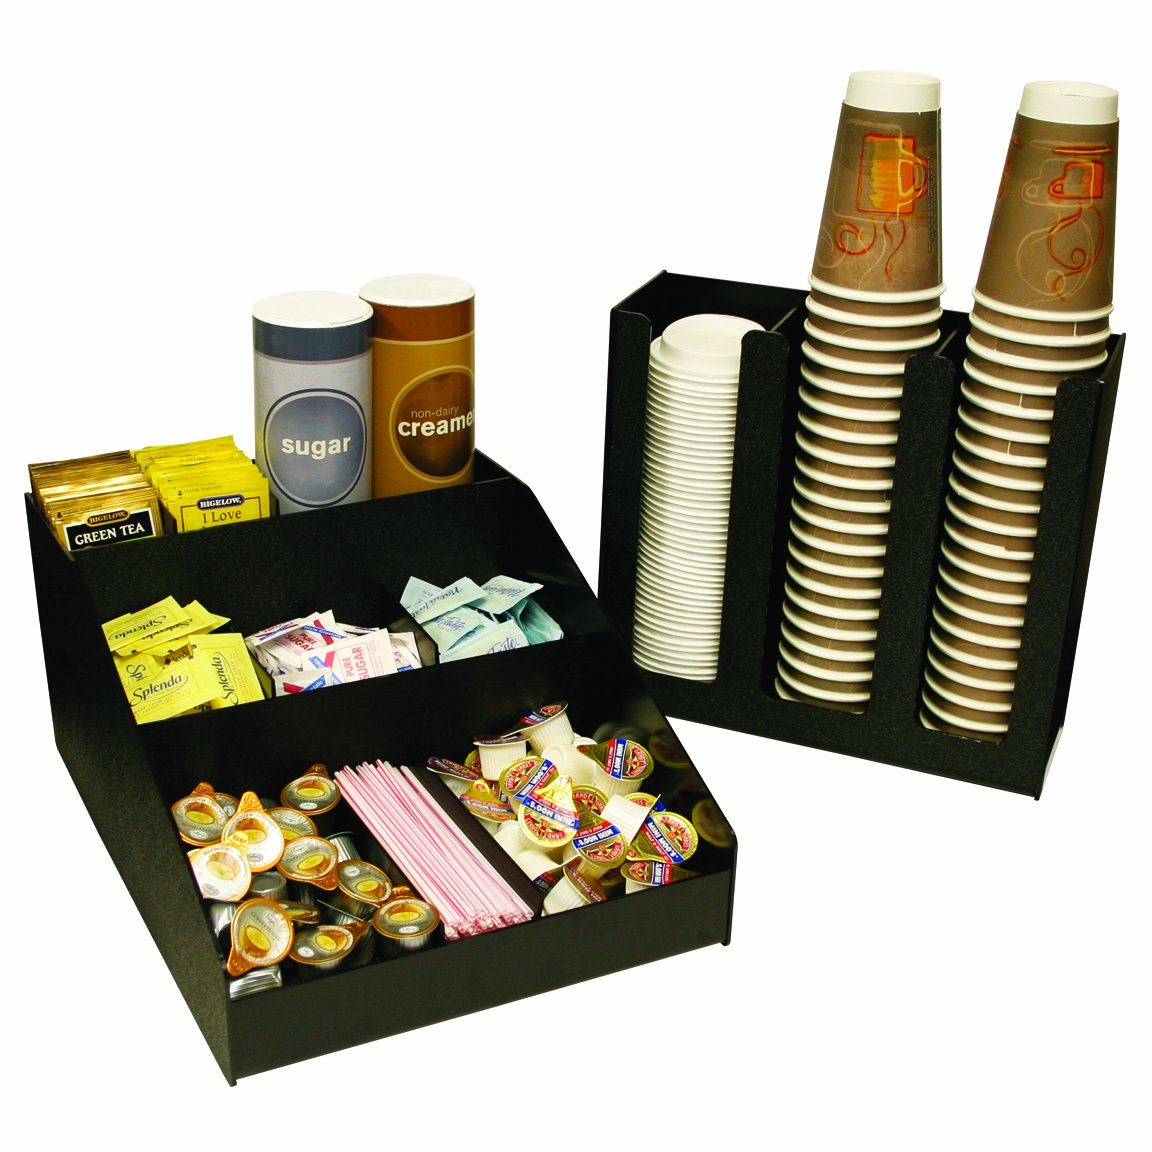 2 Piece Combo. 12'' Wide x 16'' D. Coffee or Condiments Organizer & a 3 Column Cup and or Lid Holder...for One Great price ! Movable Shelf Dividers Allow You to Make your Own Size Compartments.. Great for Breakrooms & Lobbies. Proudly Made in the USA by PPM